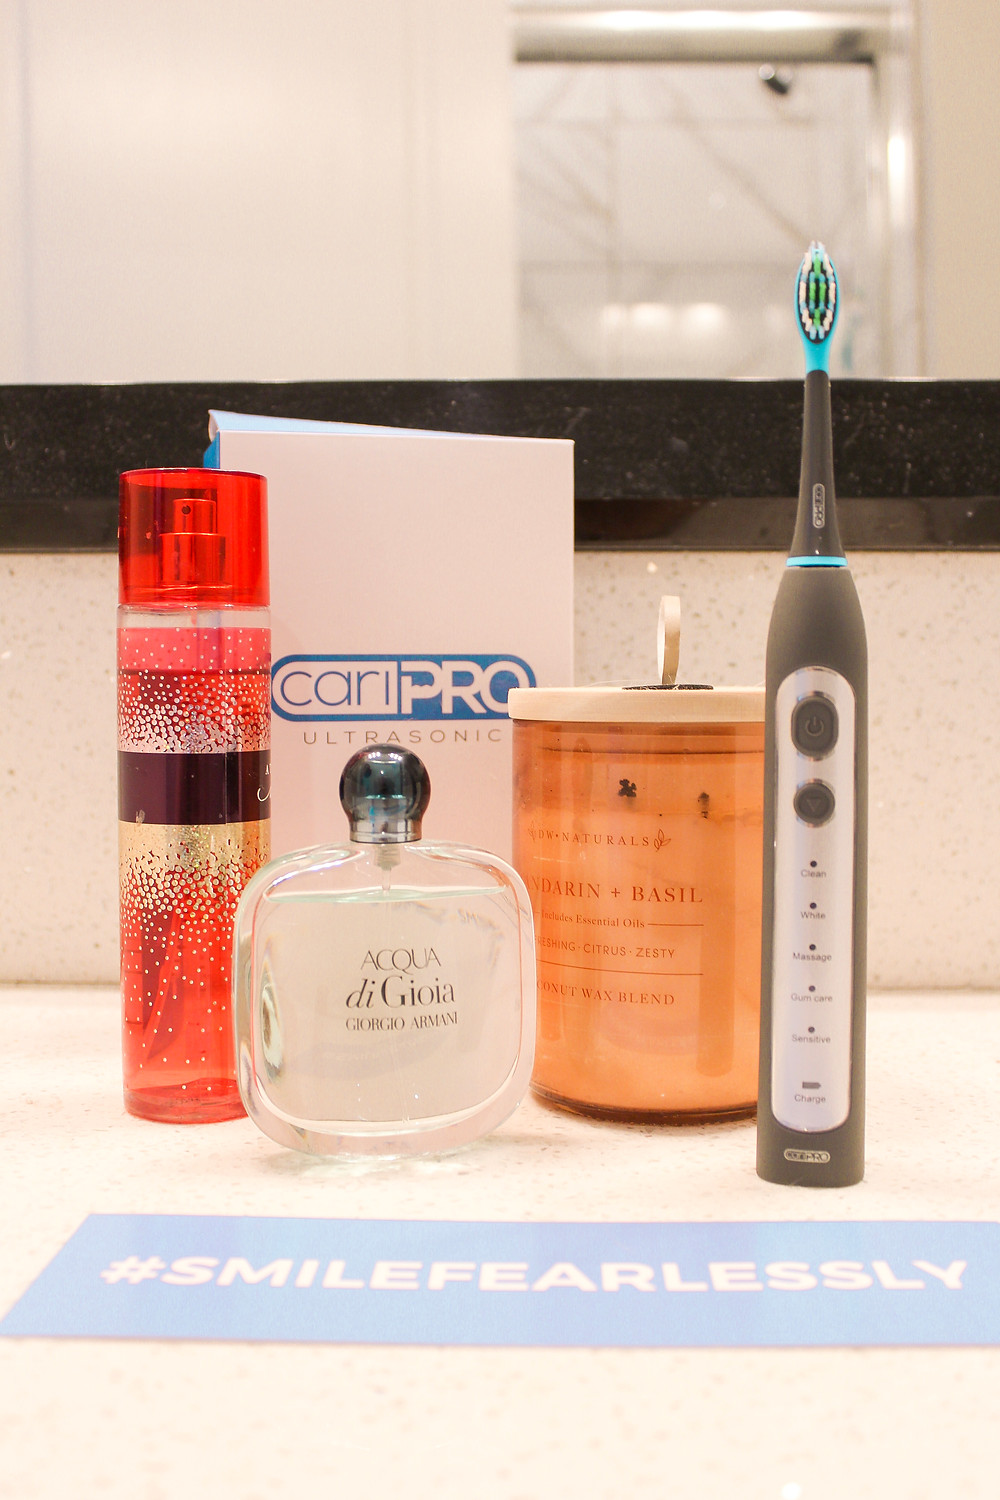 cariPRO electric toothbrush sitting on bathroom counter with perfume and candle